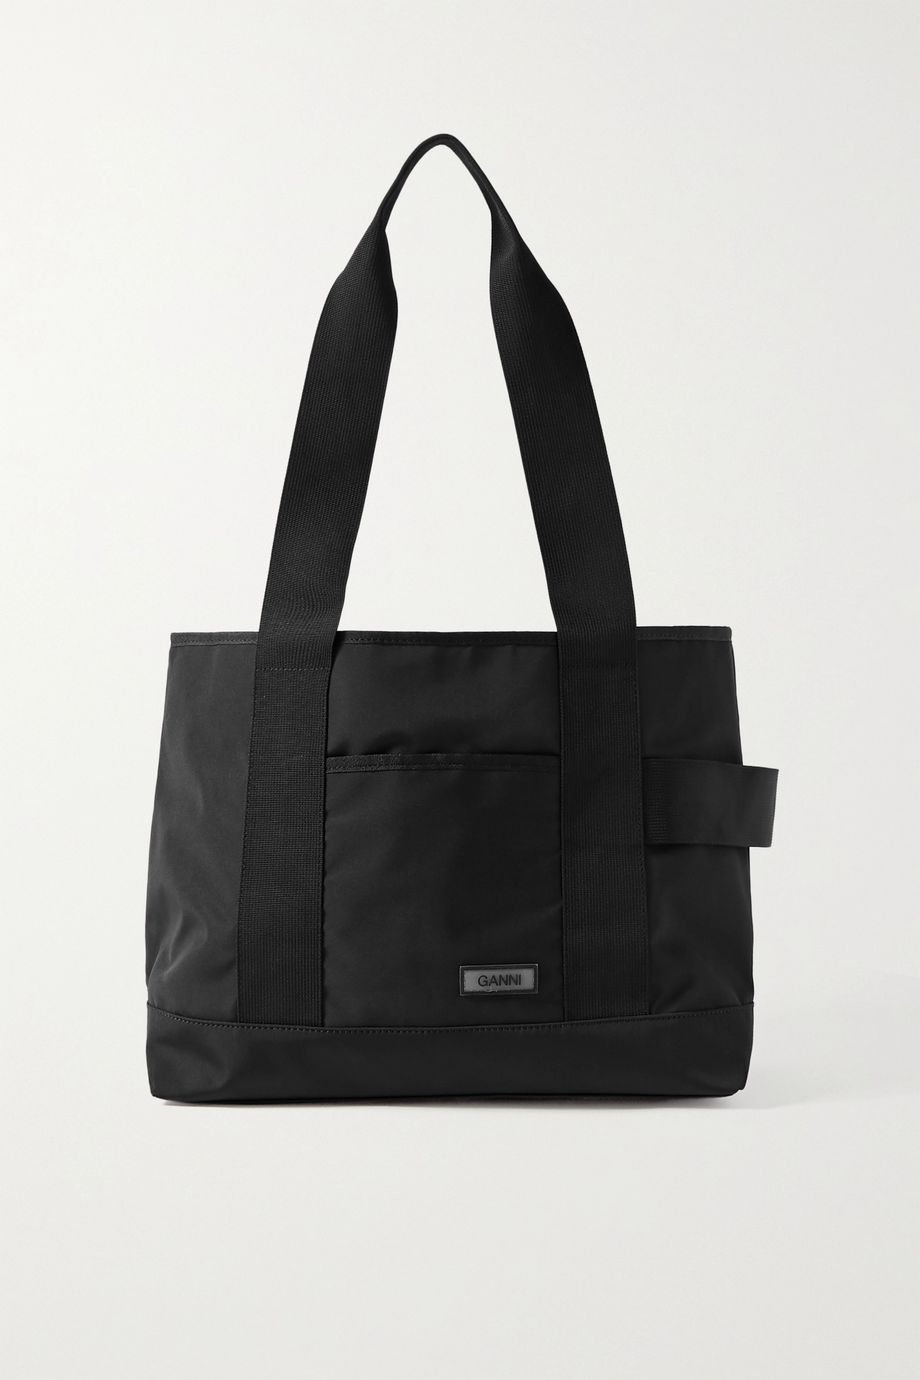 GANNI Large grosgrain-trimmed shell shoulder bag